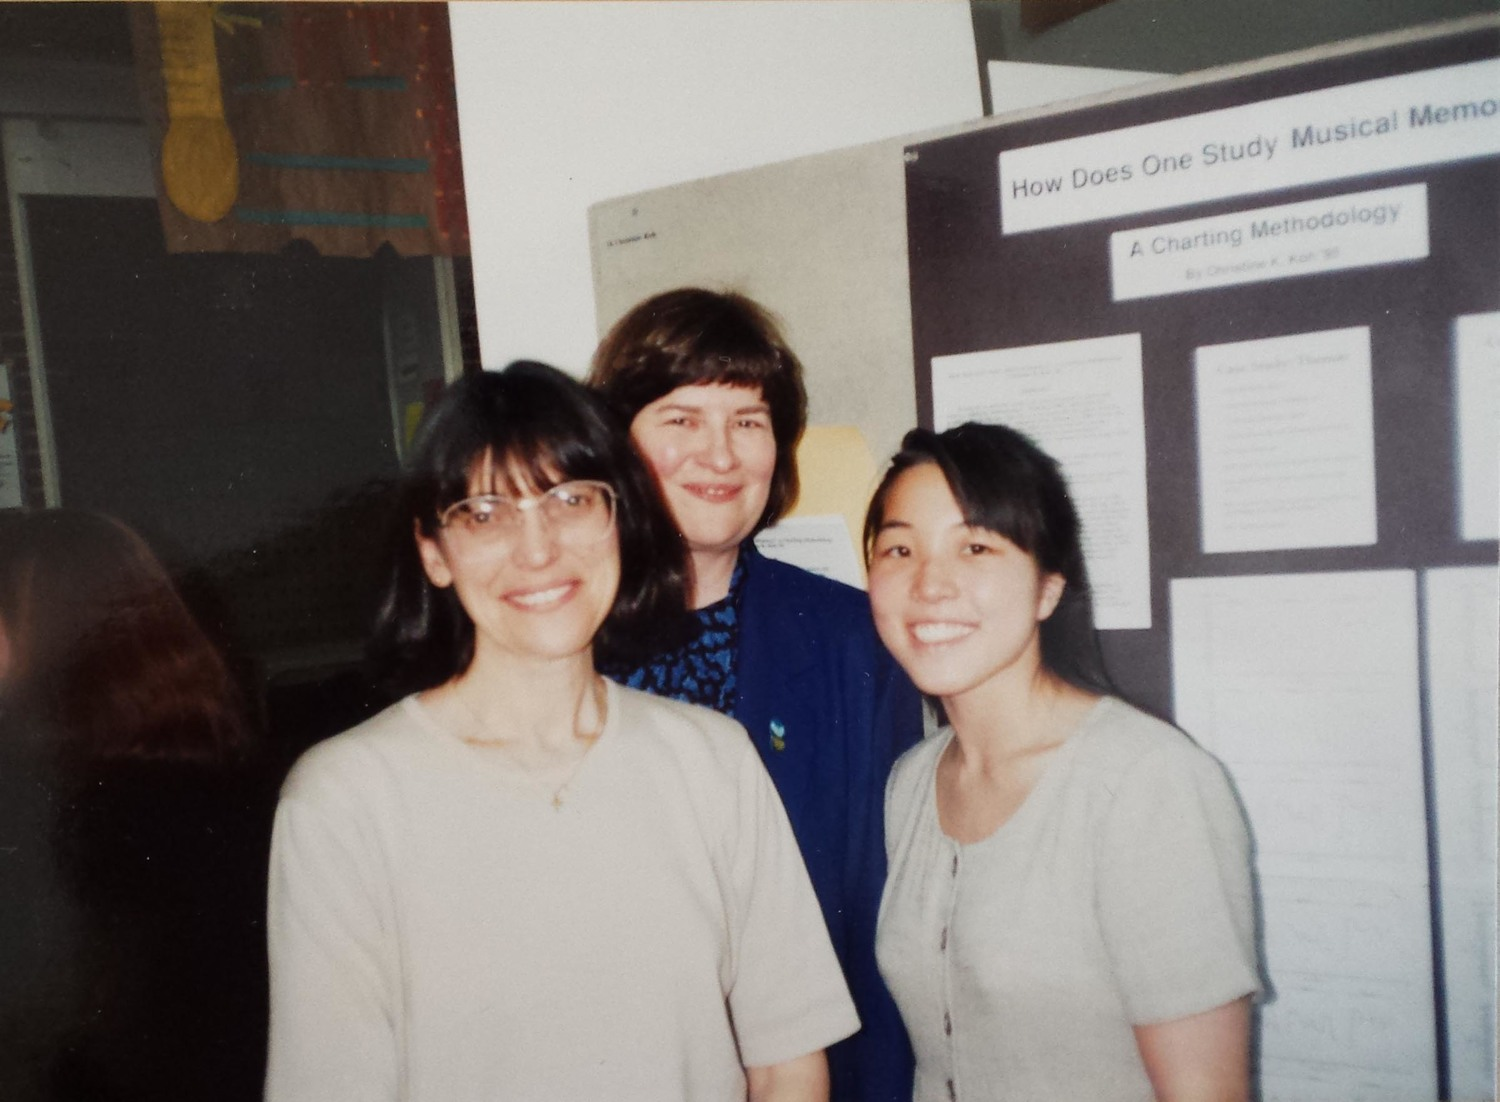 With Grace Baron and Ann Sears at a poster presentation